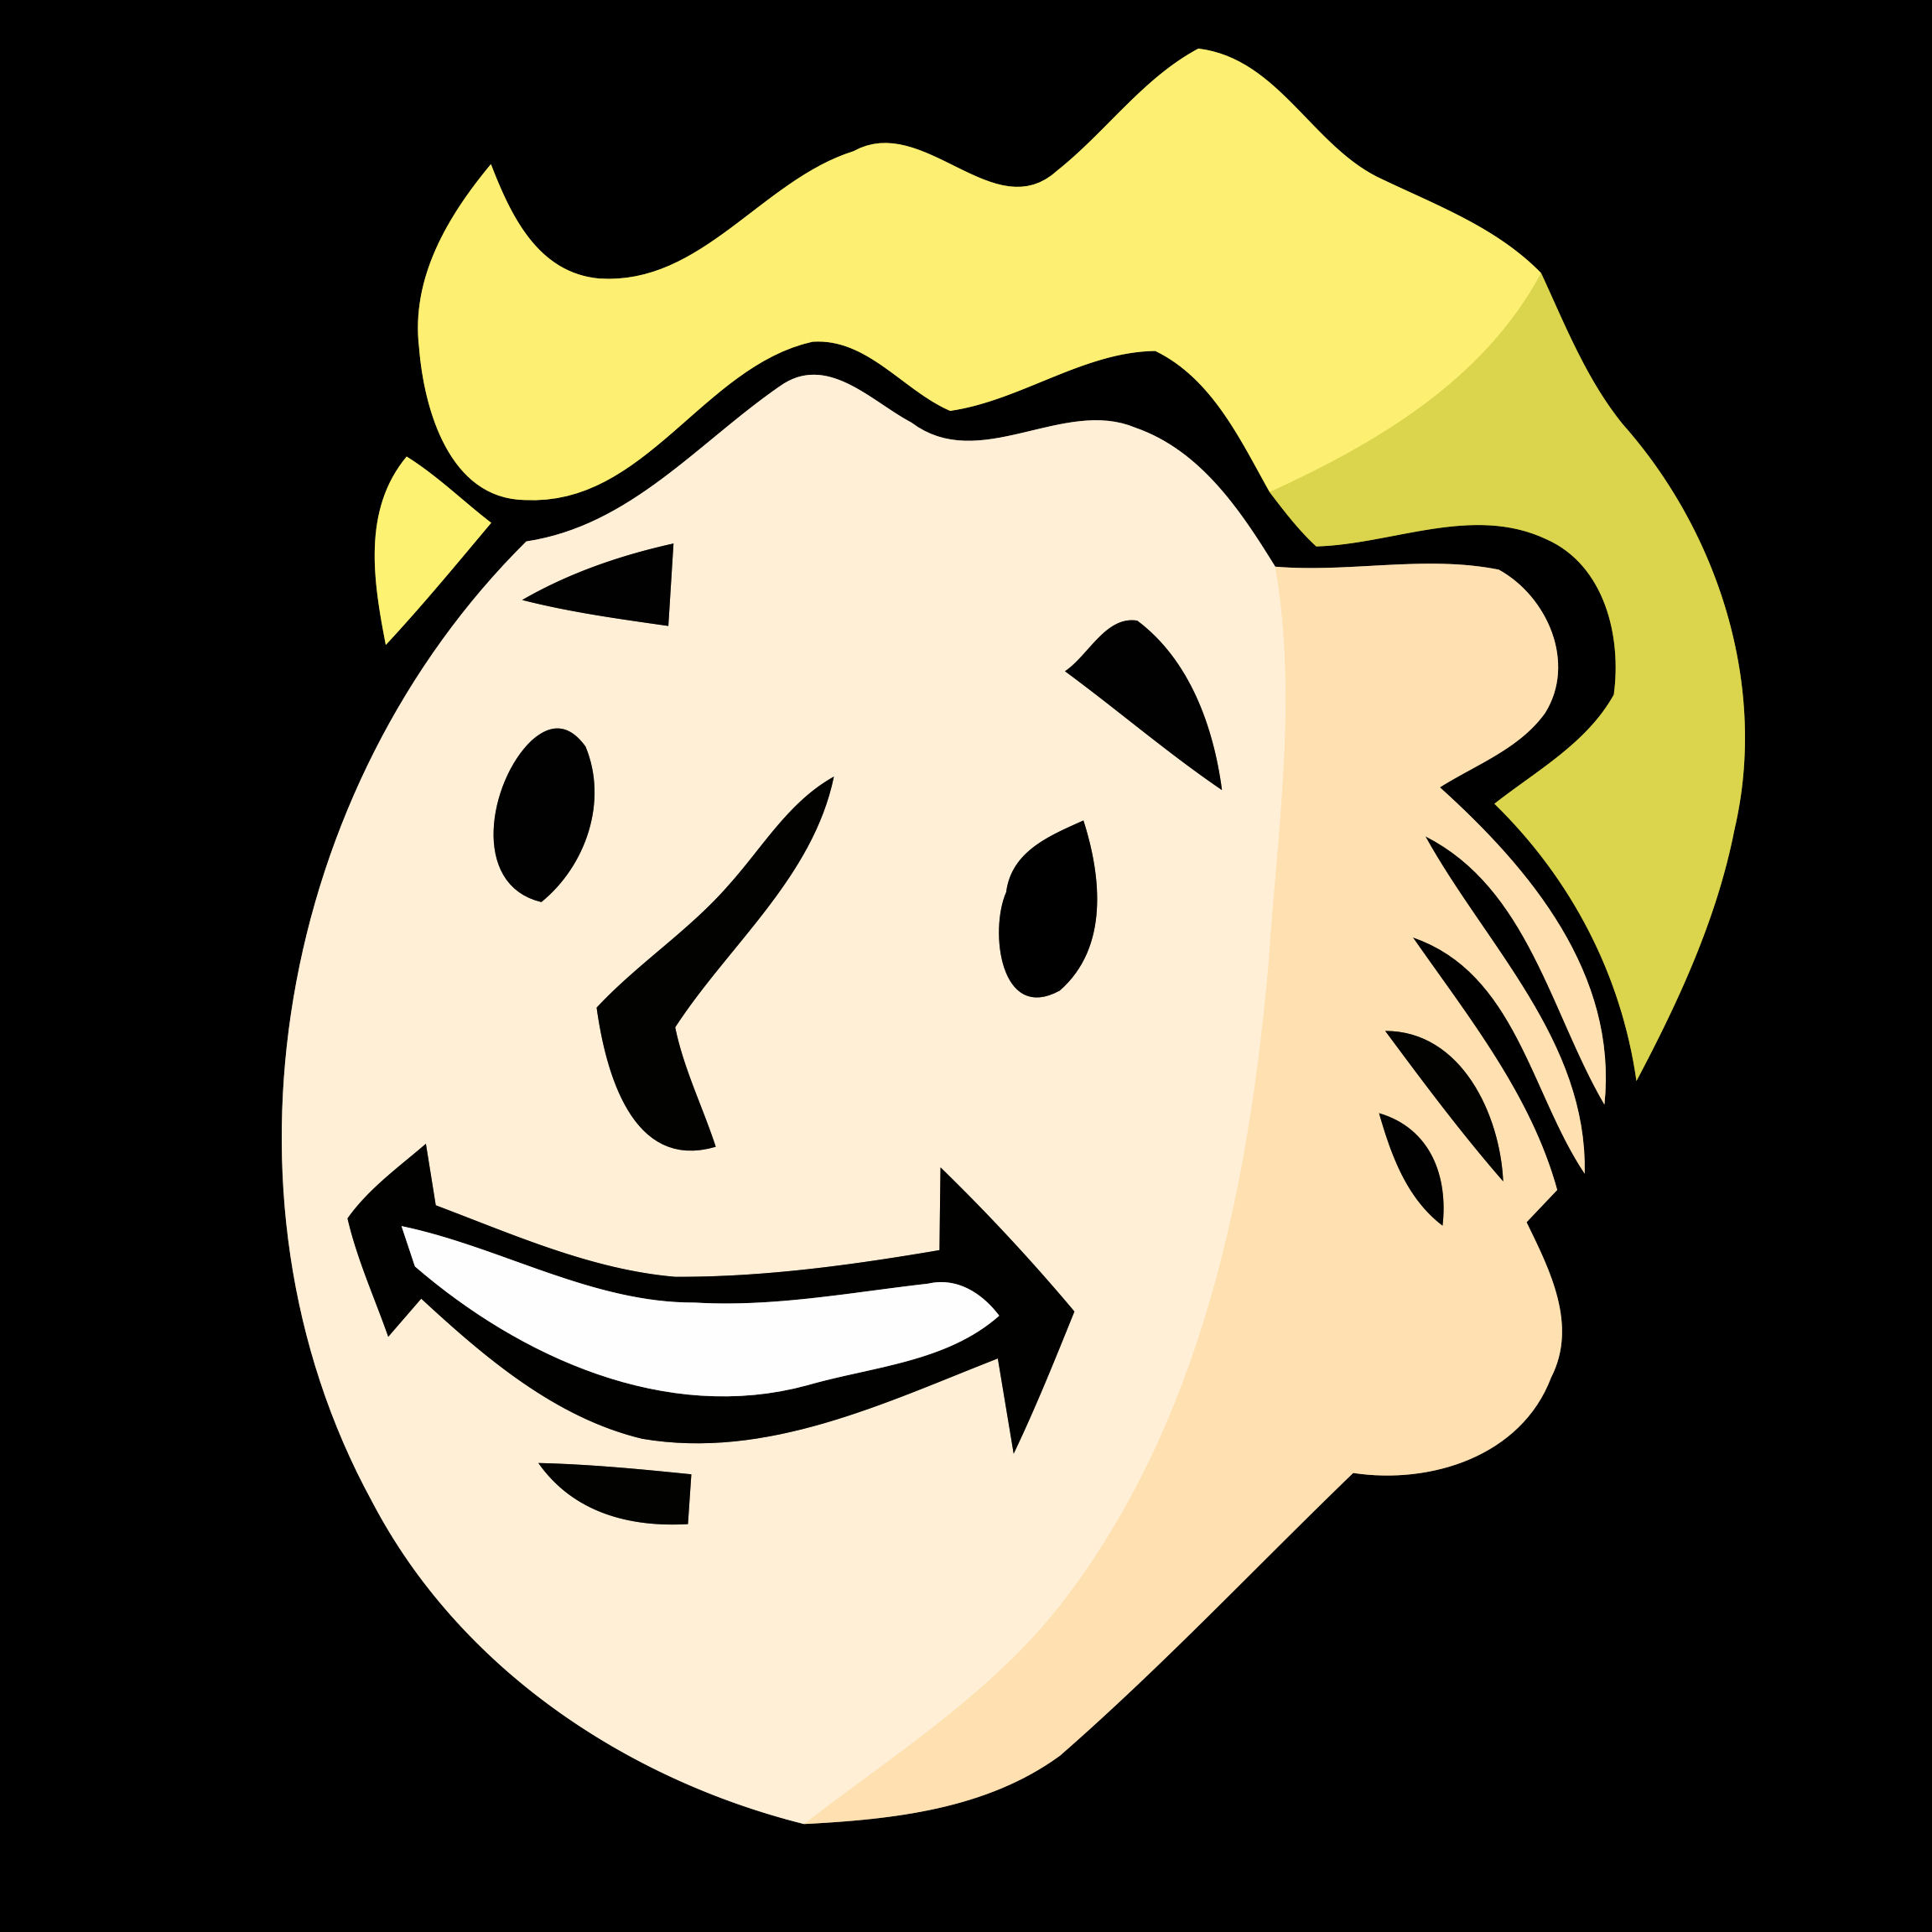 Fallout 4 Wallpaper Hd: Vault Boy Phone Wallpaper